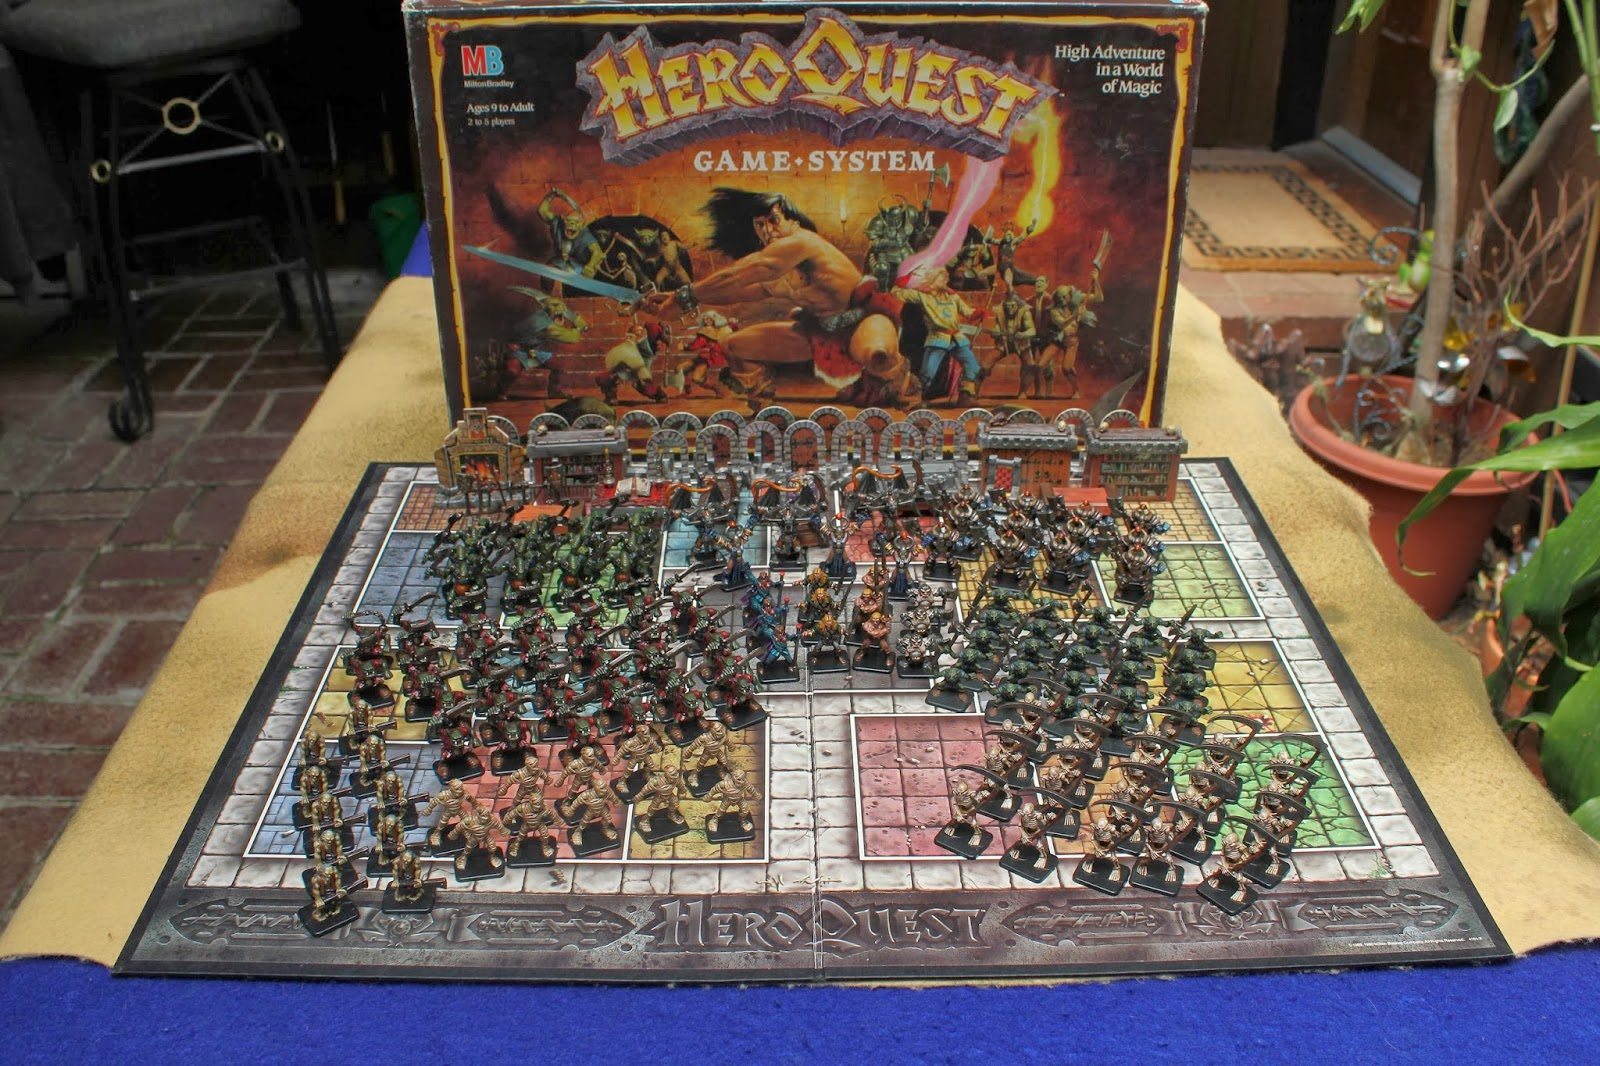 The Wertzone: HERO QUEST returns